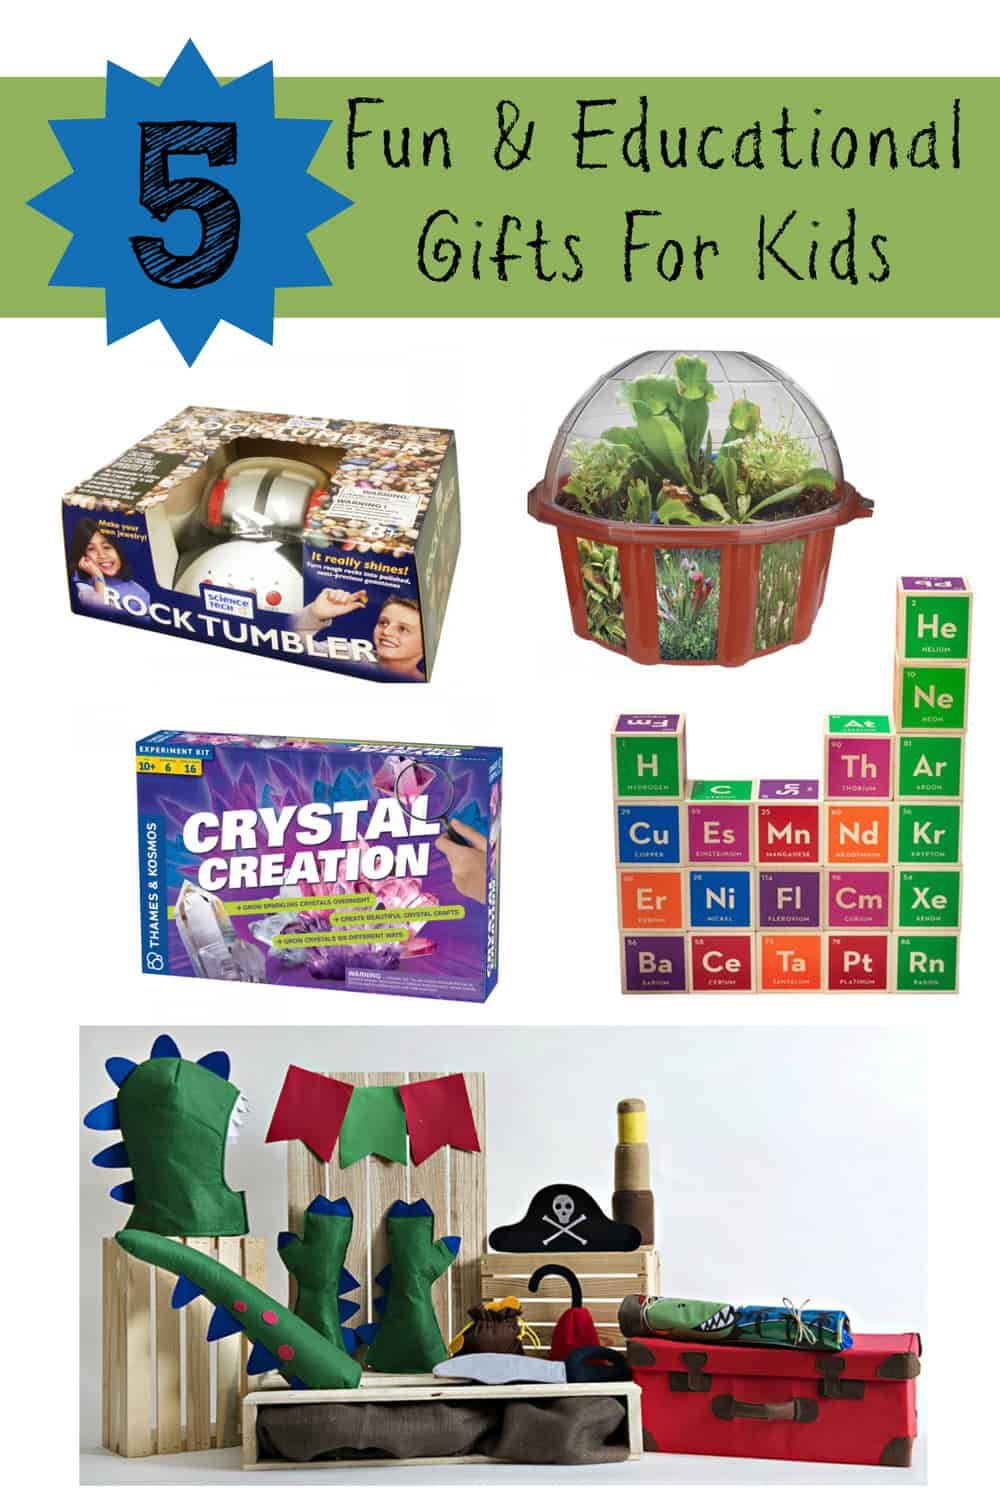 5 Fun & Educational Gifts For Kids